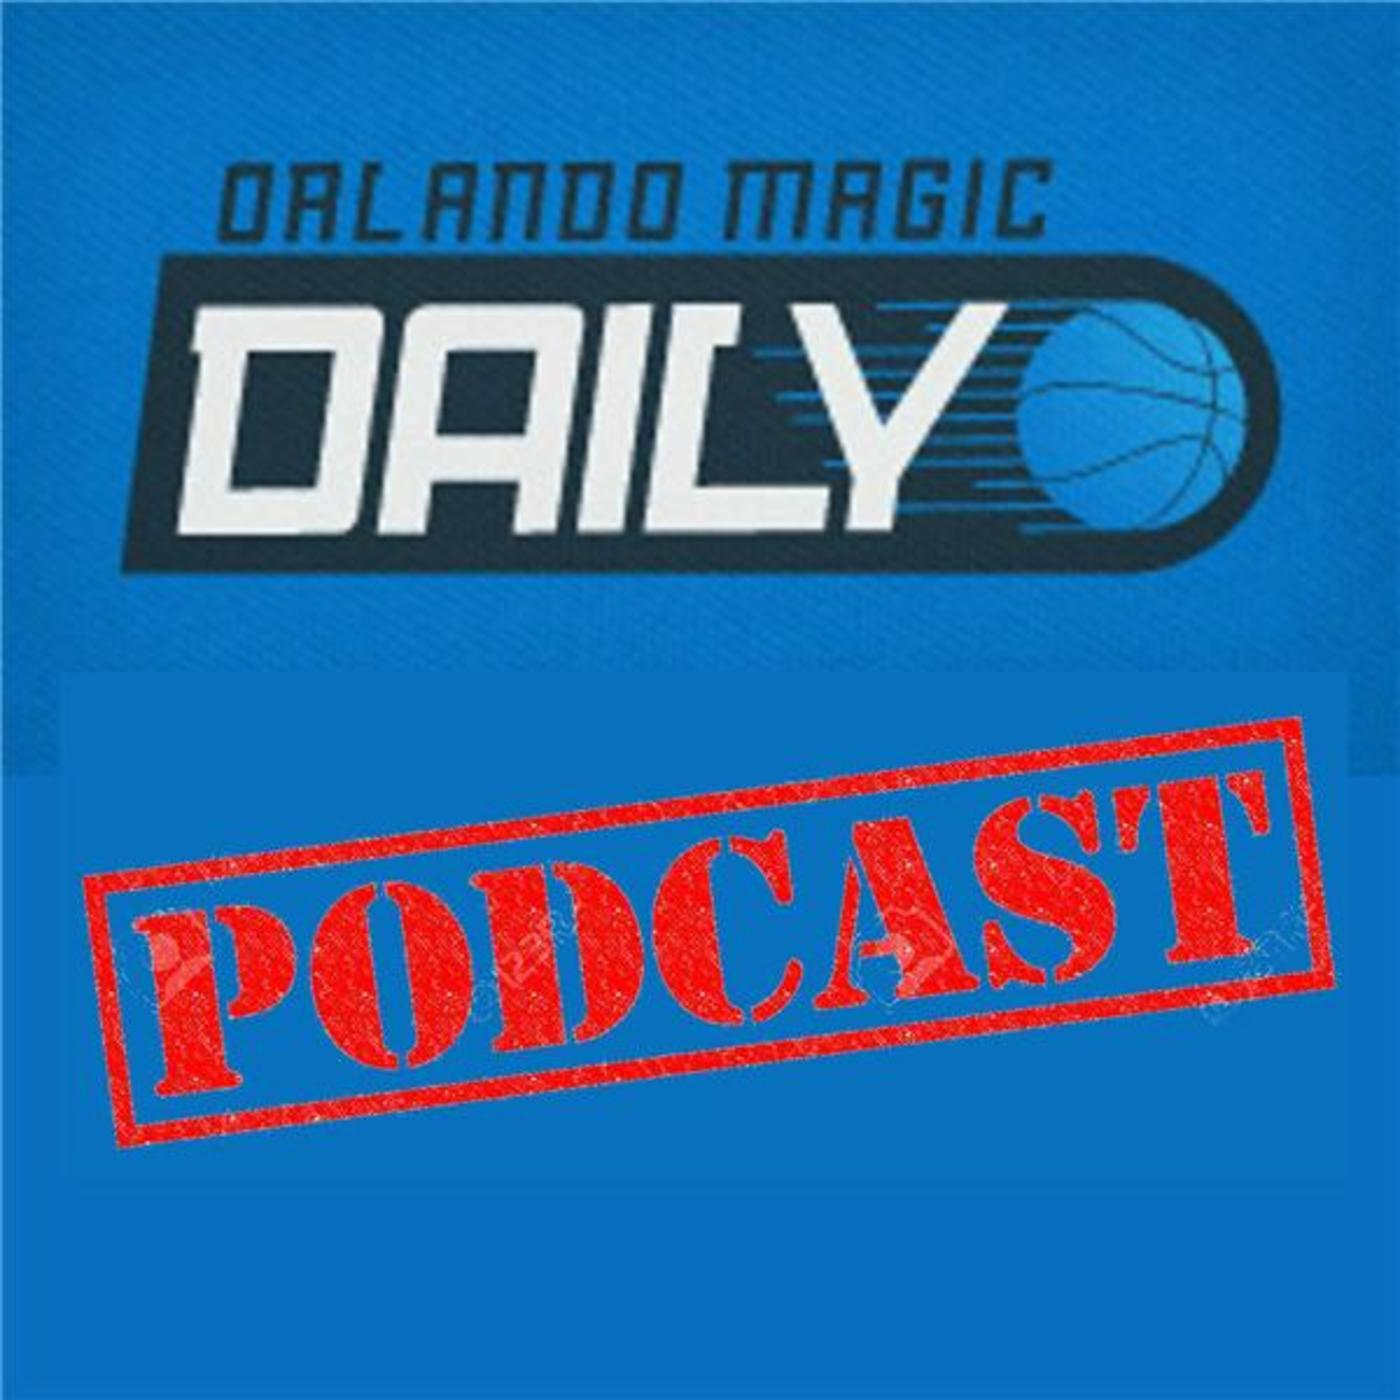 Orlando Magic Daily